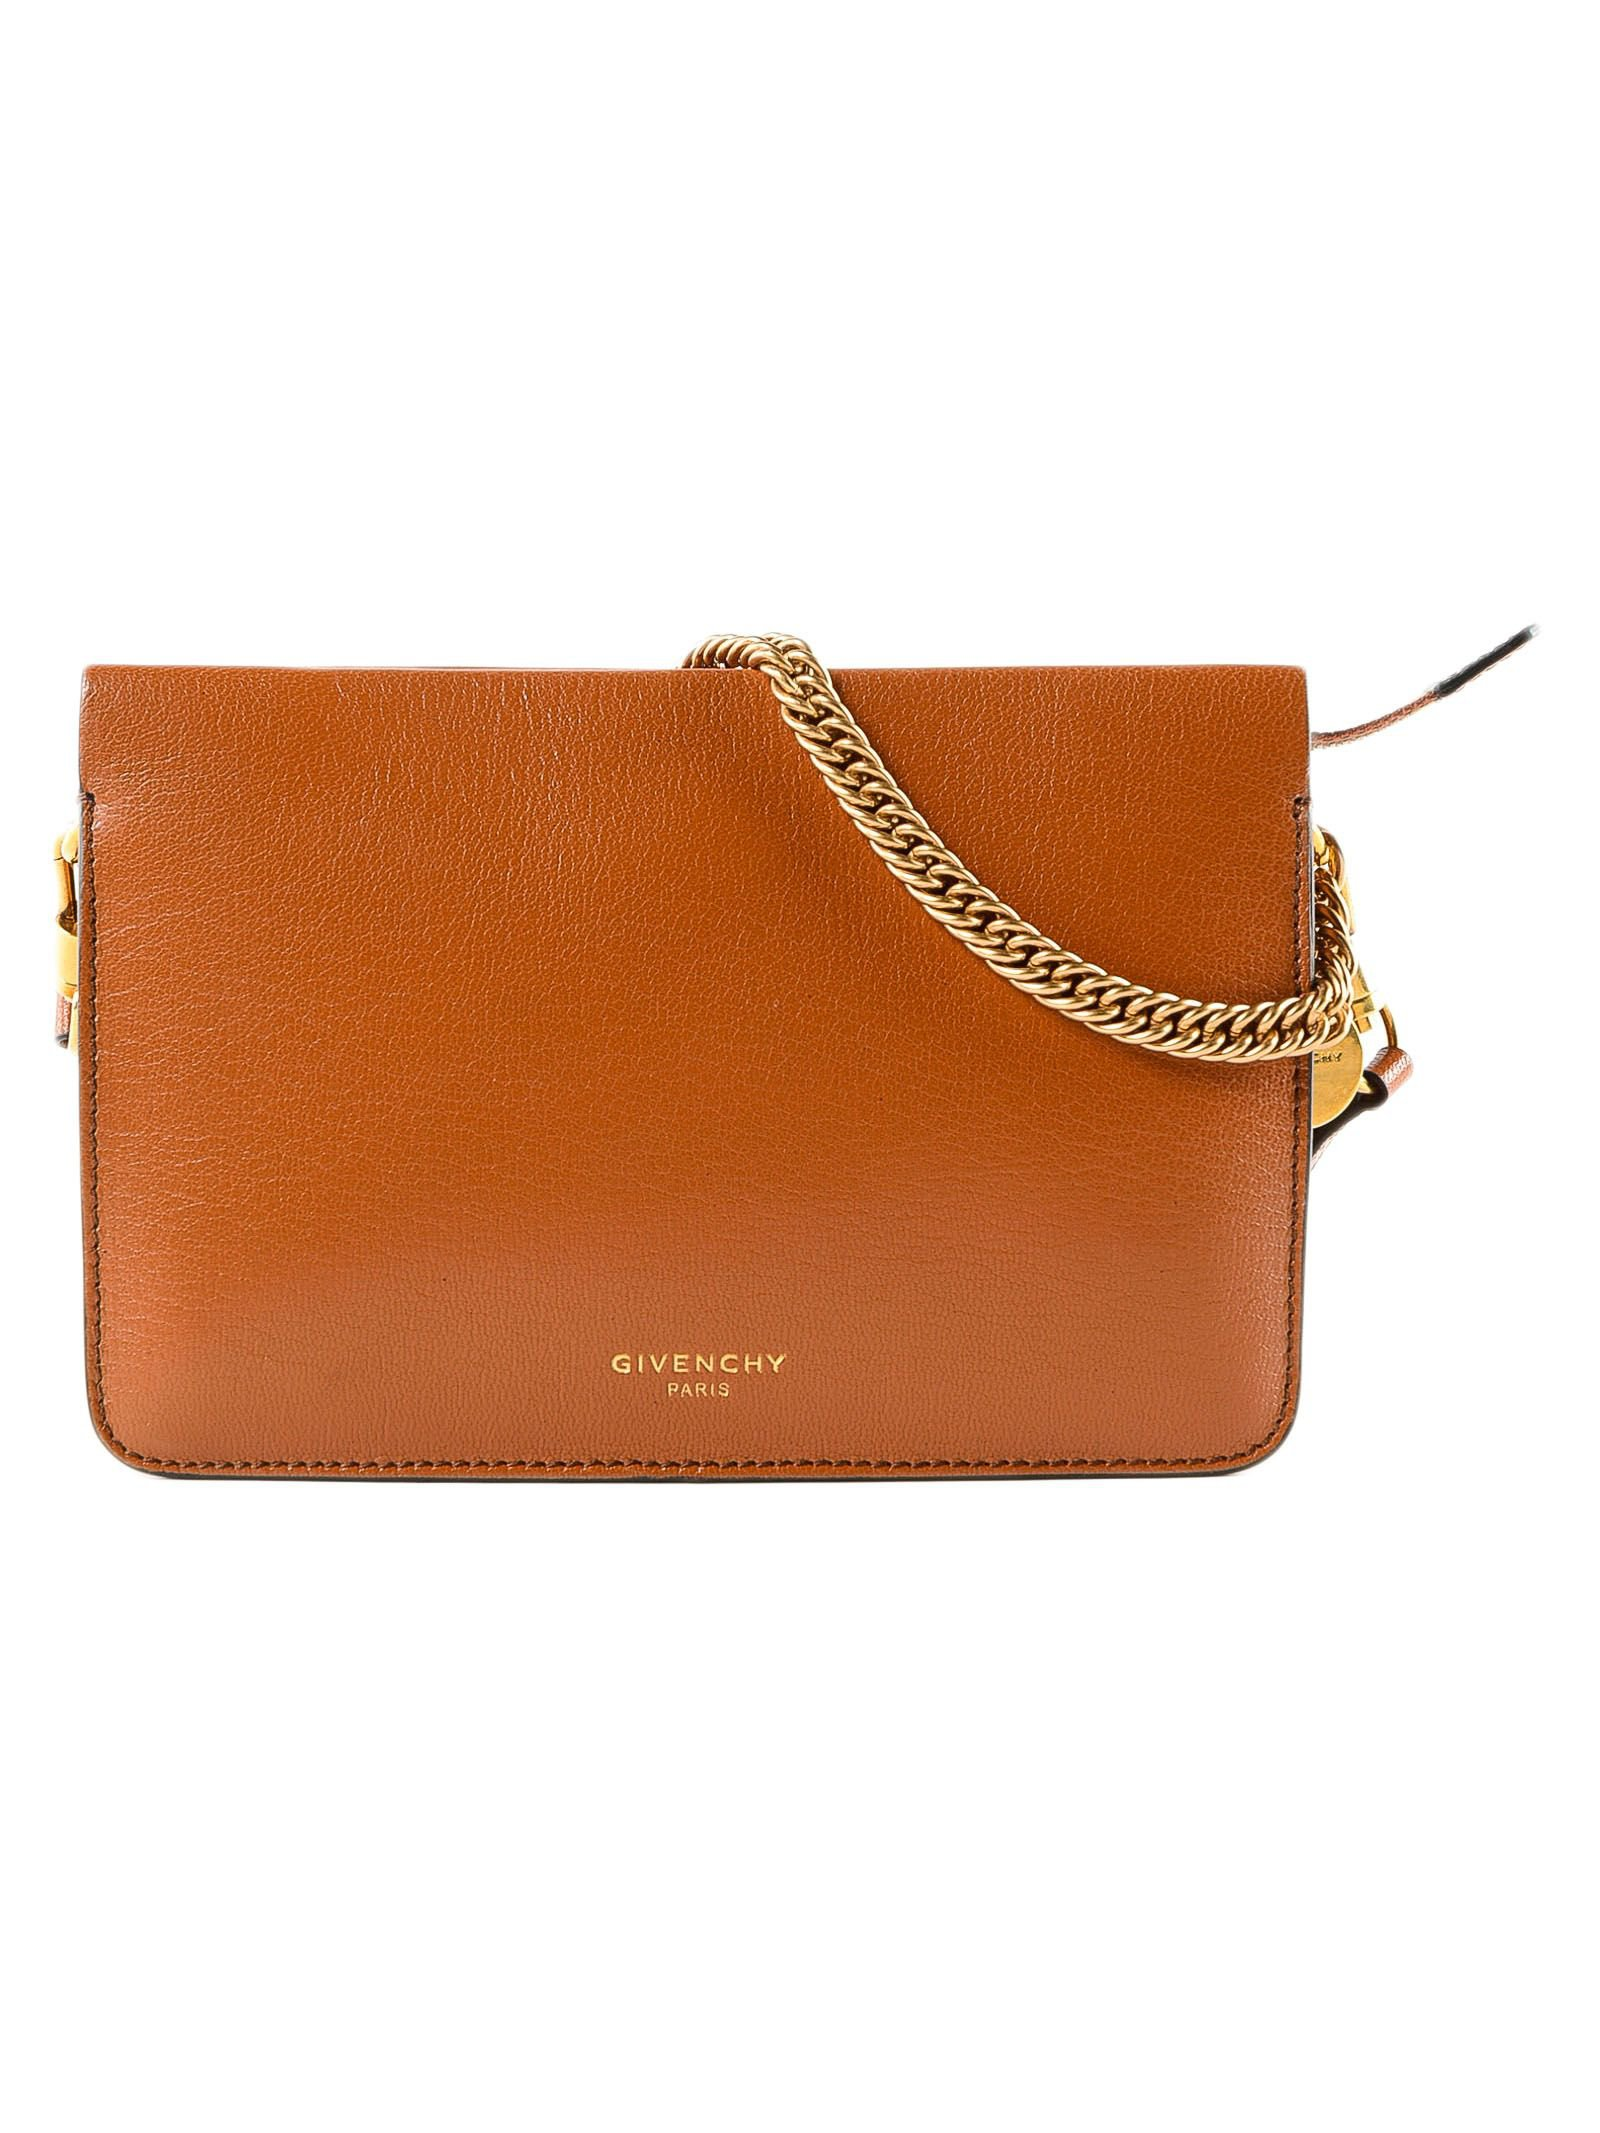 Givenchy Textured Clutch